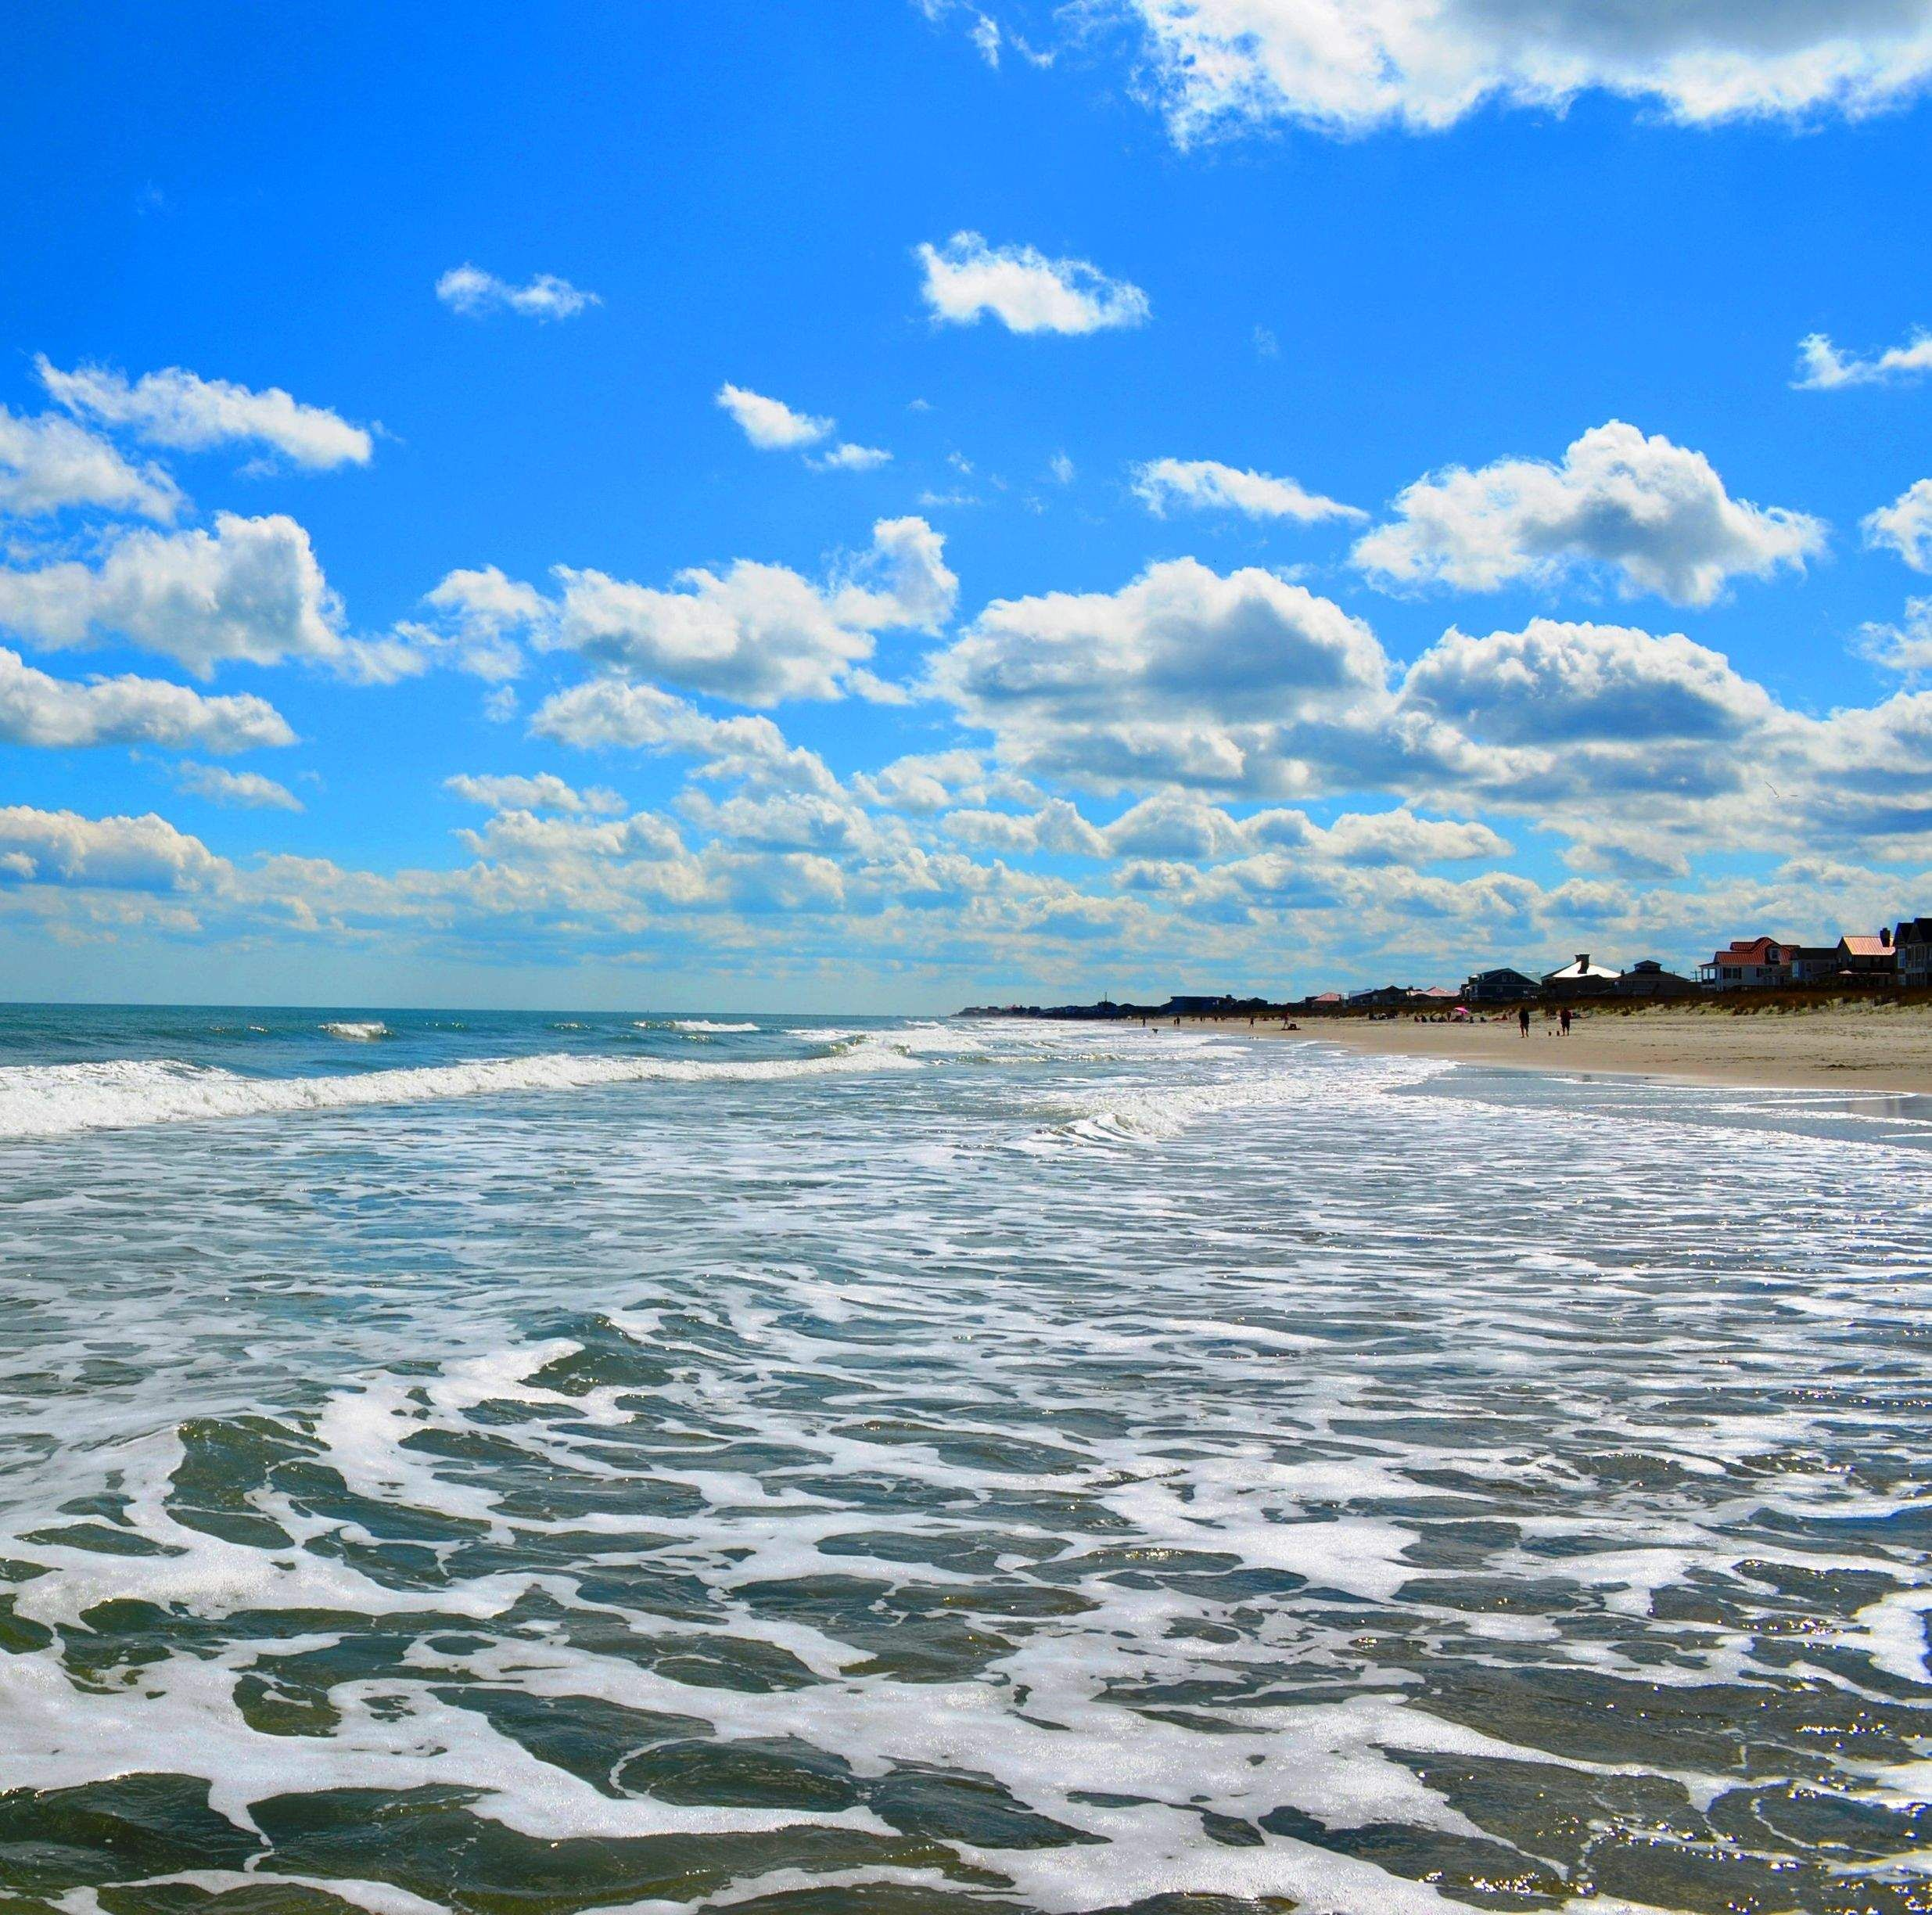 Pawleys Island Beach: Pawleys Island Was Named One Of The Top 10 Beaches In The